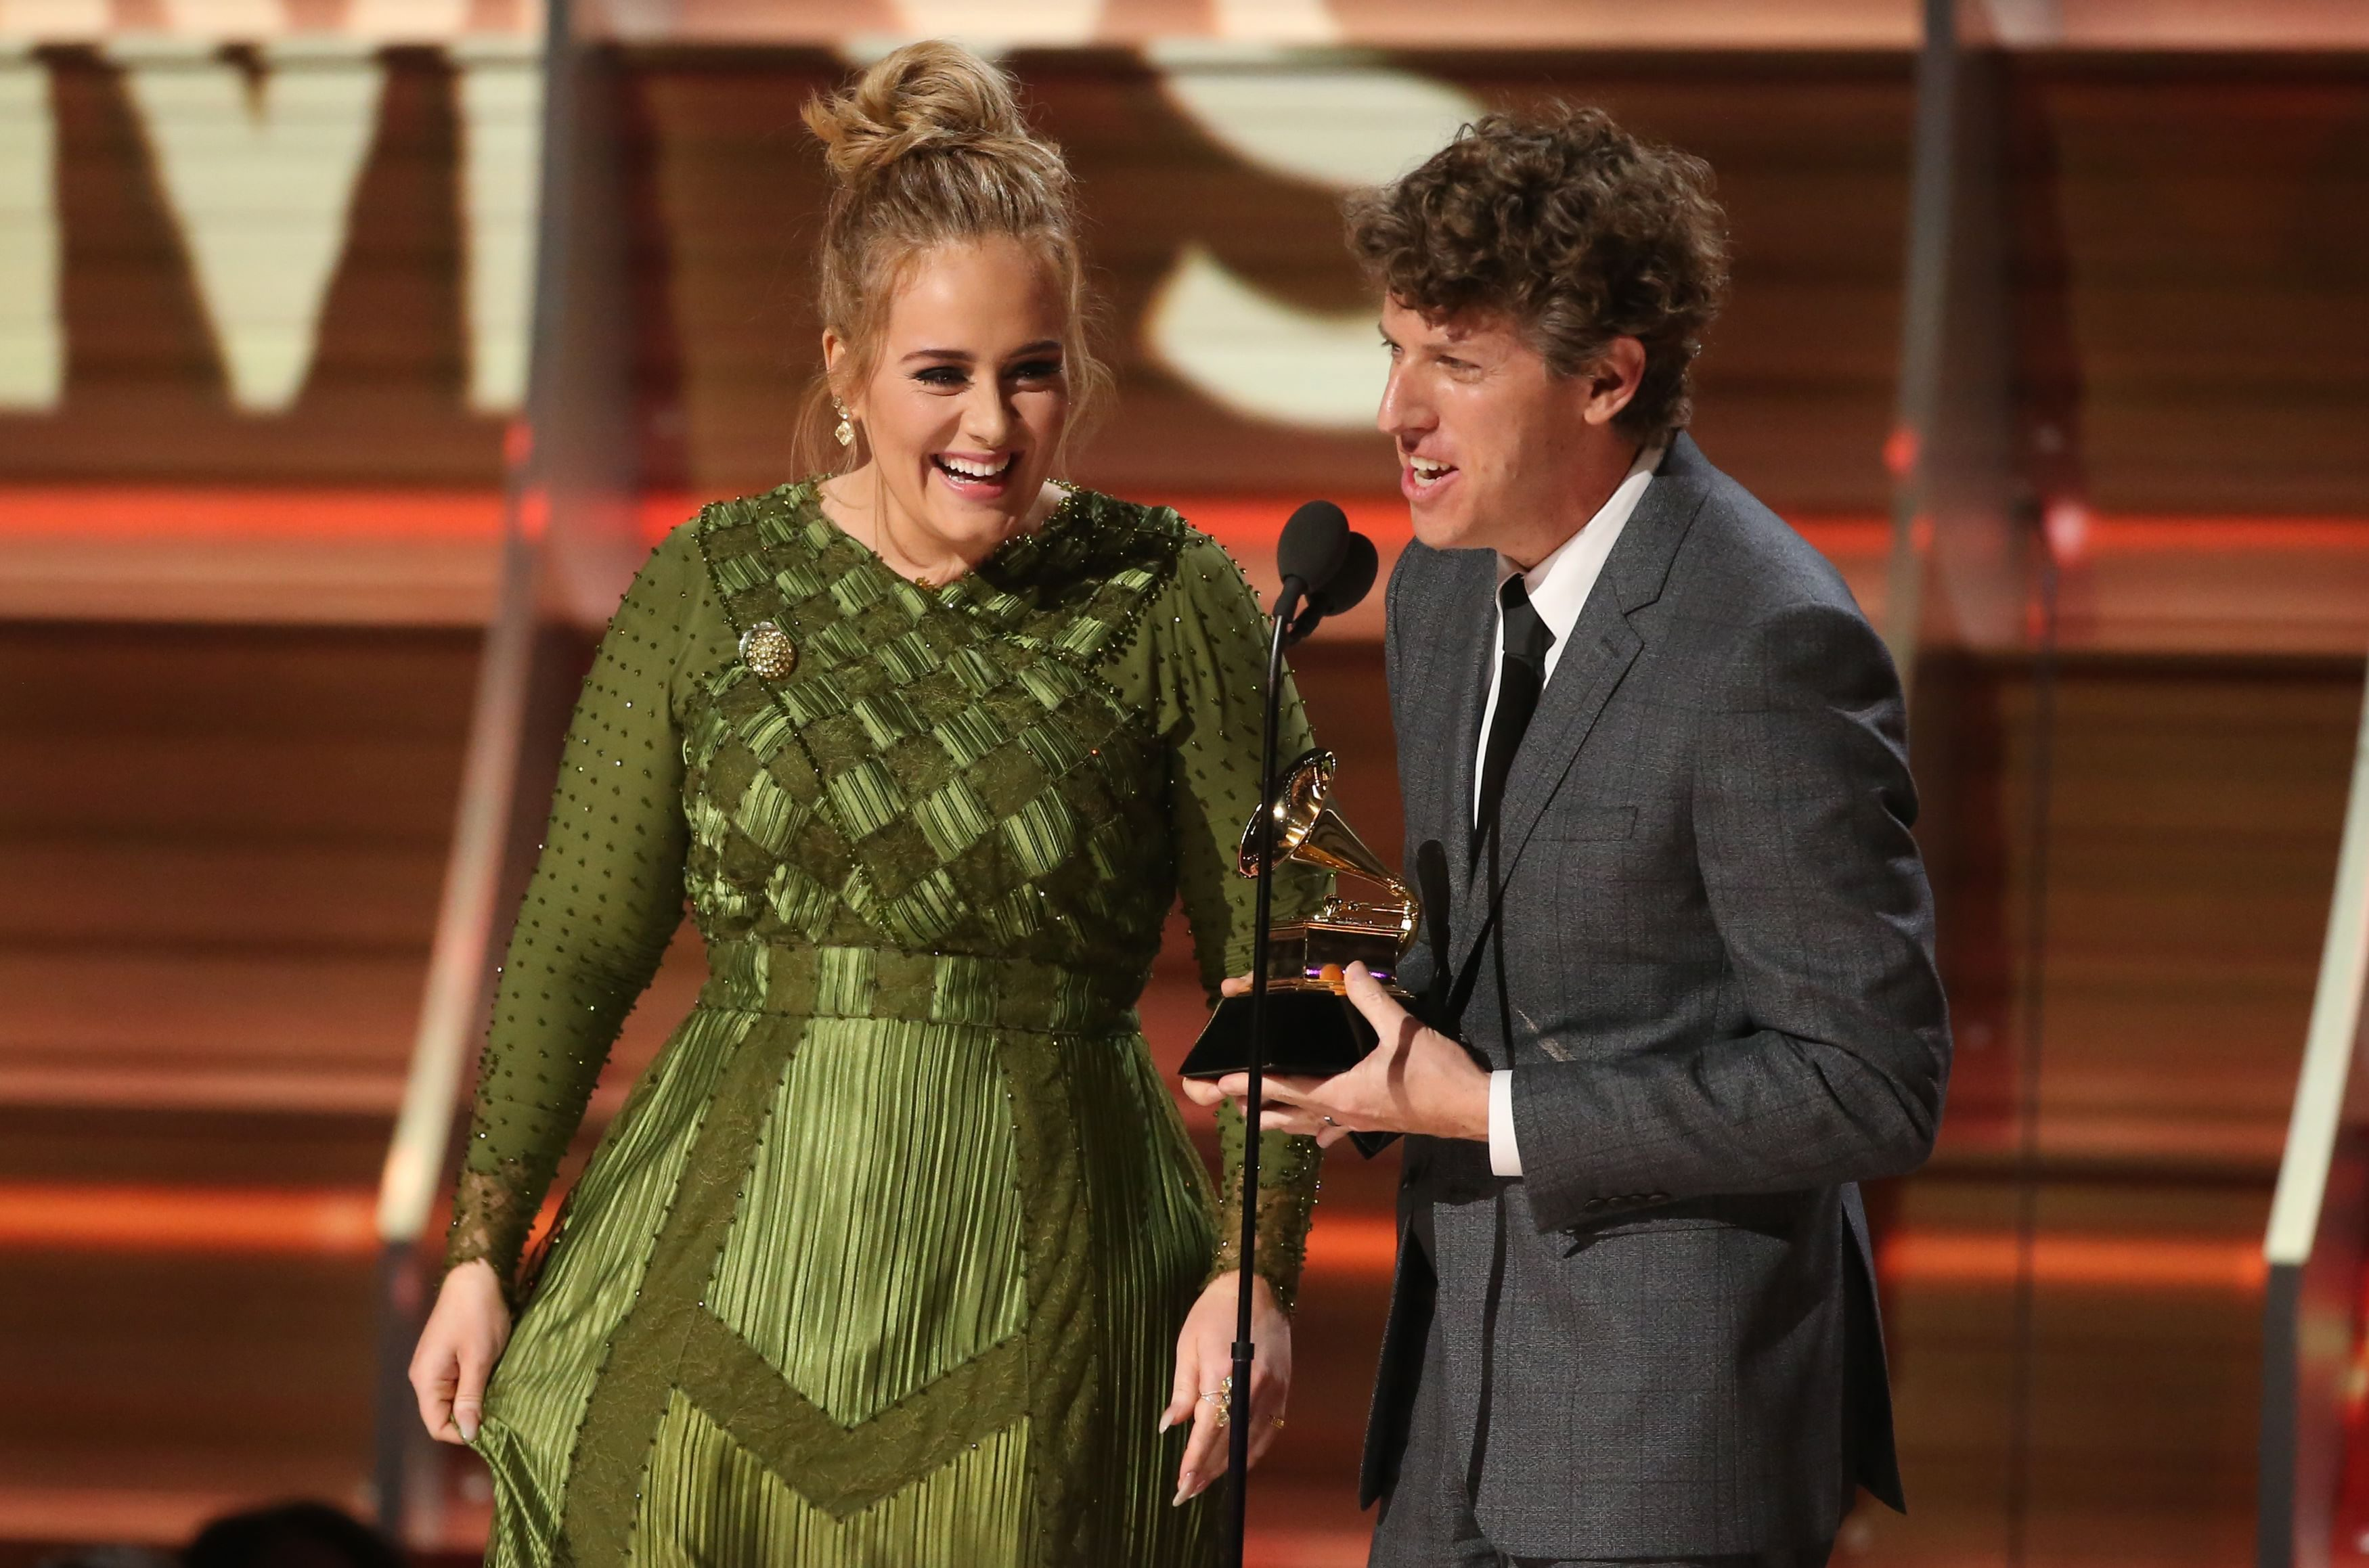 Adele and co writer Greg Kurstin accept the Grammy for Record of the Year for